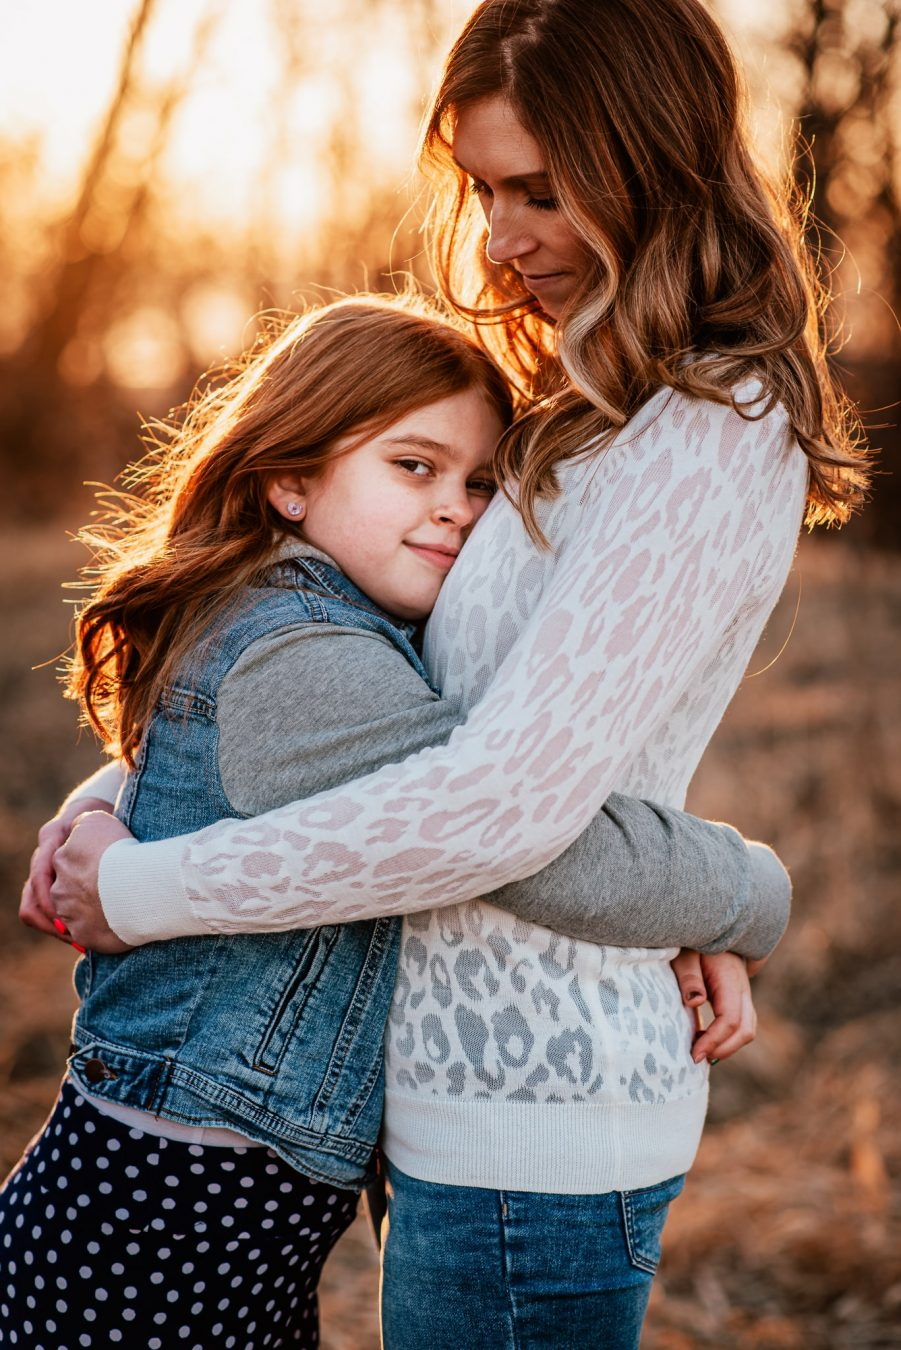 fox valley photographer, mother daughter sunset session by daphodil photo